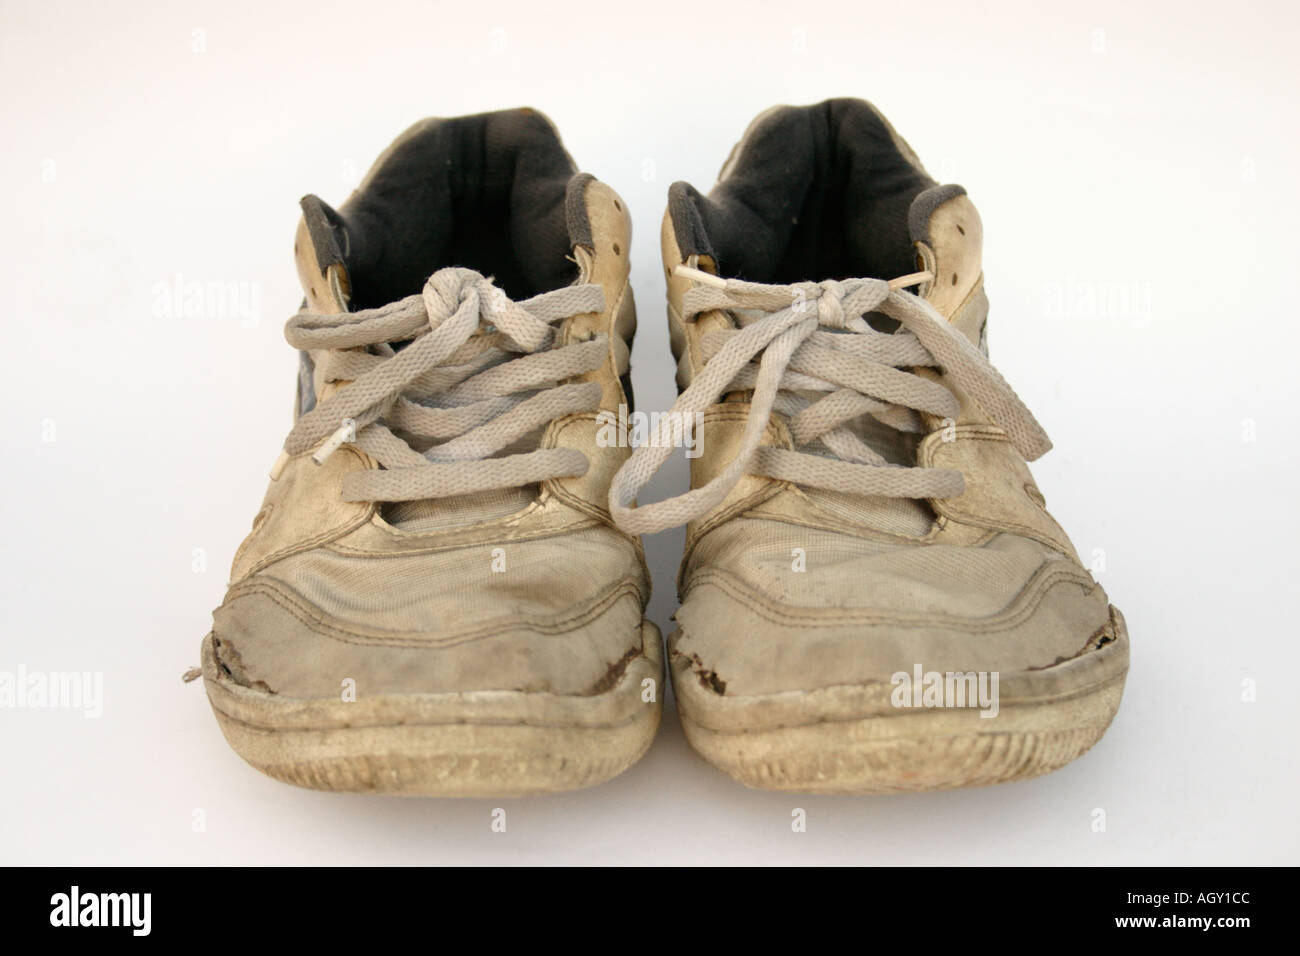 pair of dirty old worn sneakers comfort durability - Stock Image